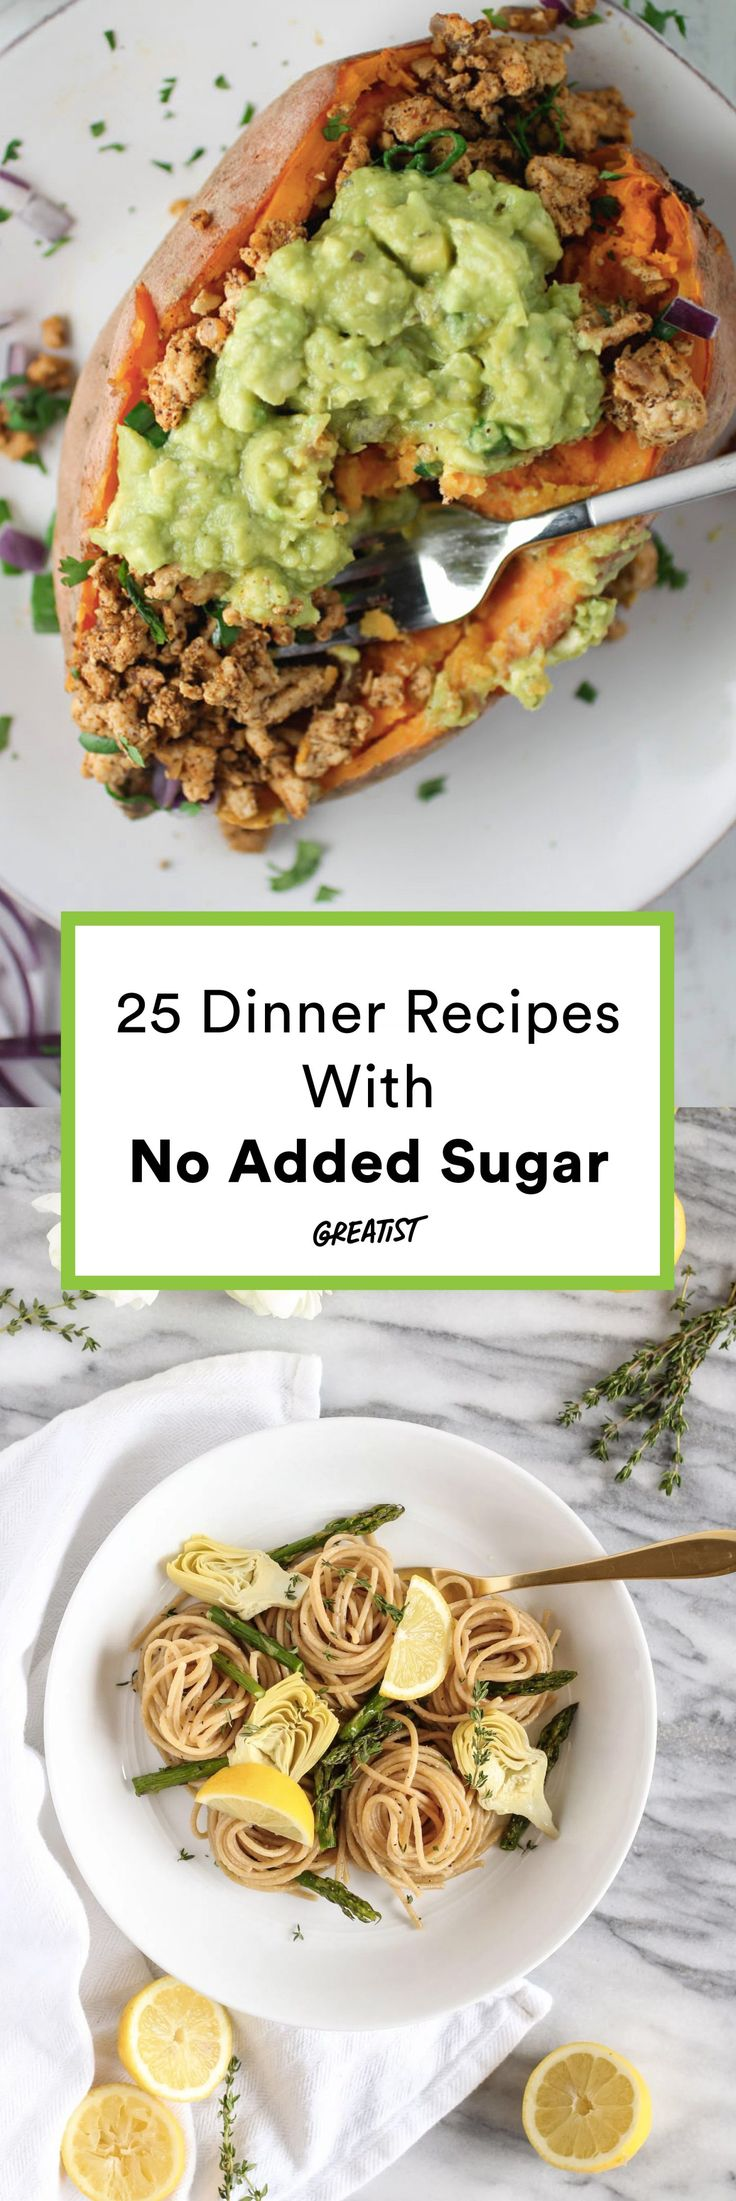 No ketchup, no honey, no nothin'. #greatist https://greatist.com/eat/sugar-free-dinner-recipes